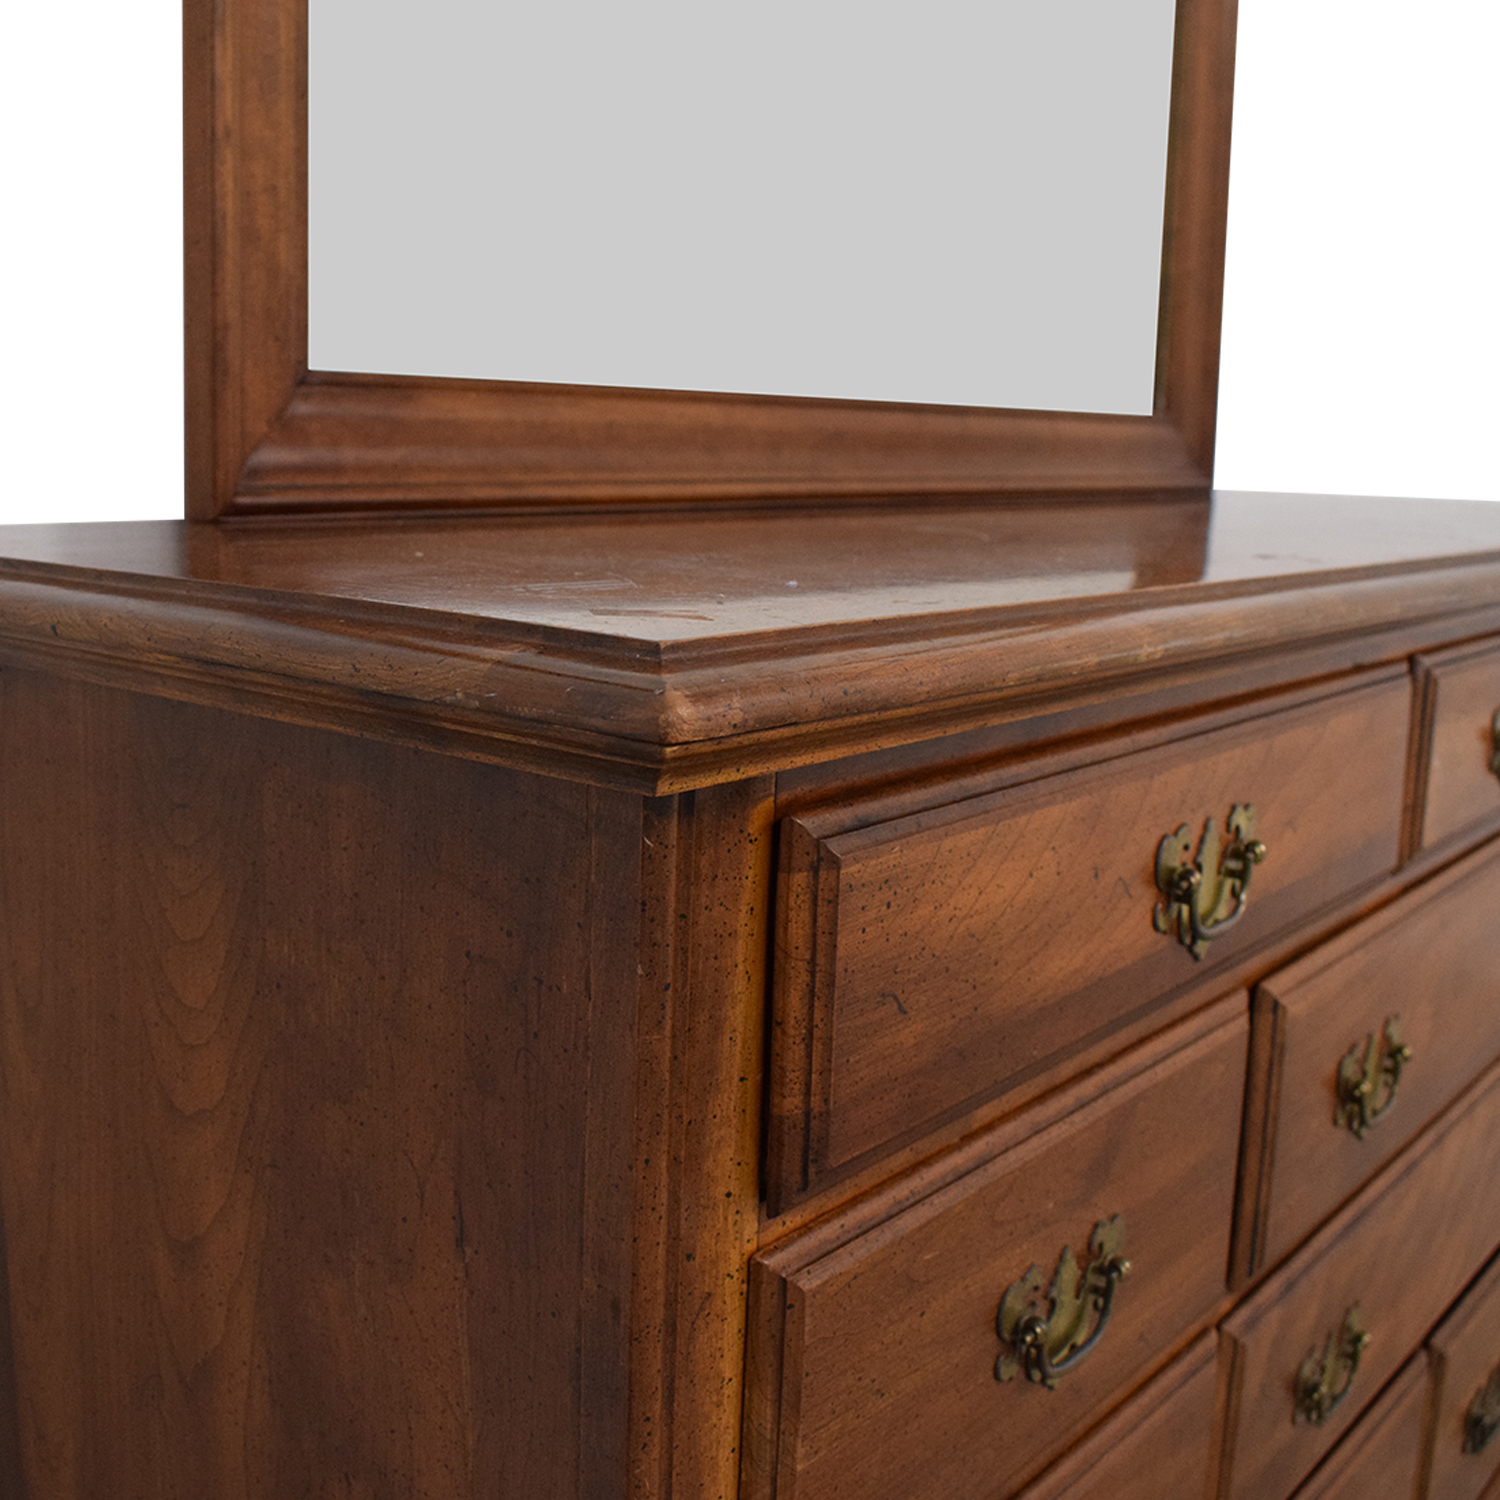 14% OFF - Pennsylvania House Pennsylvania House Dresser with Mirror /  Storage